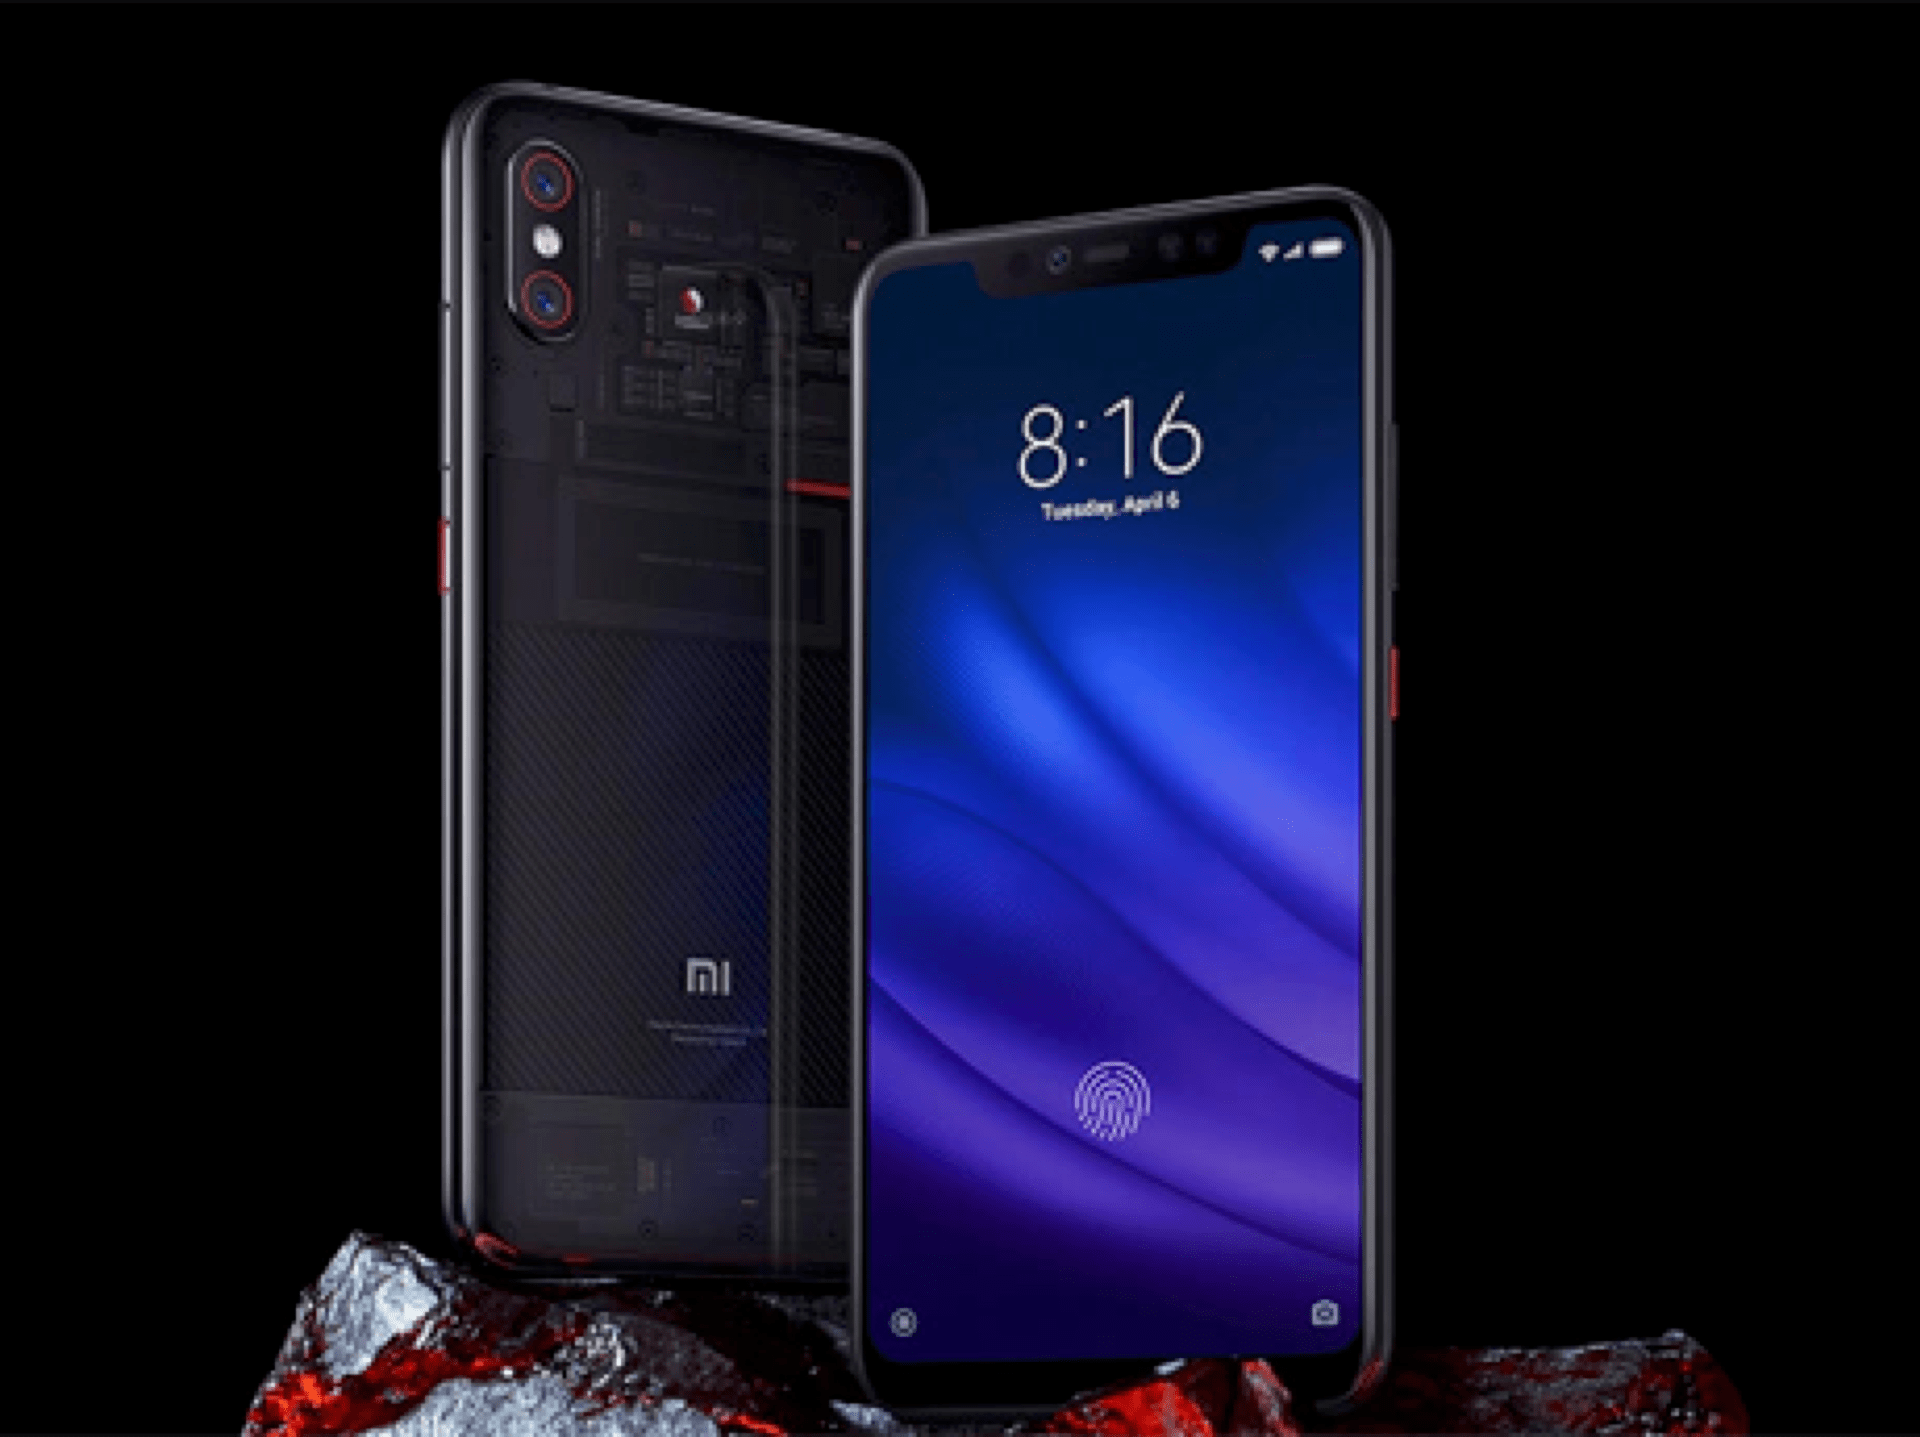 Xiaomi Mi 8 Pro price in Singapore